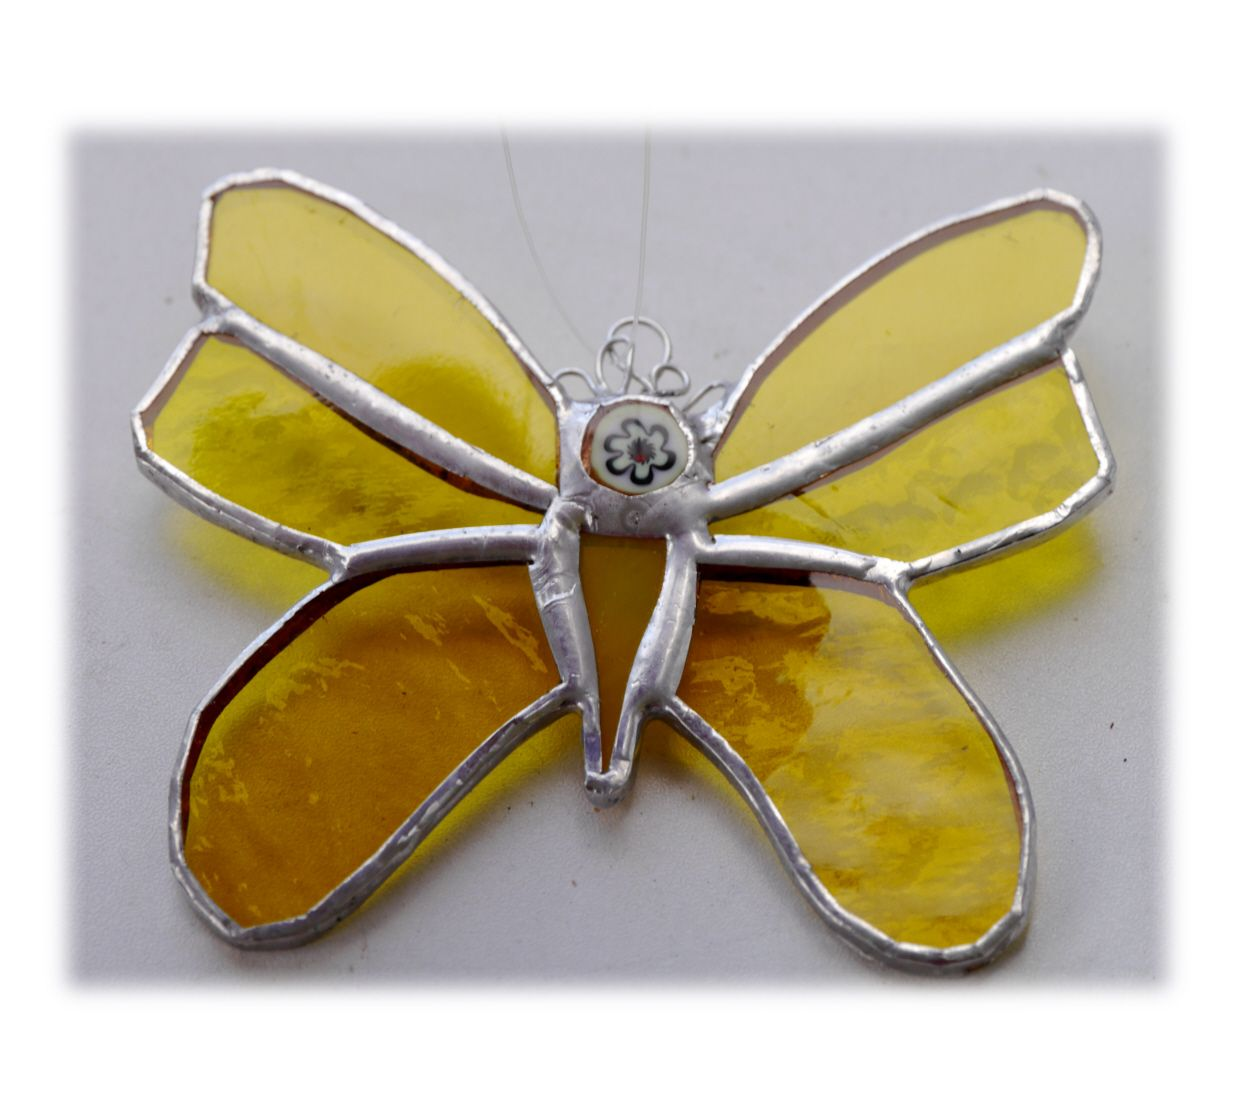 YELLOW Butterfly 11cm 060 Yellow #1907 FREE 9.00